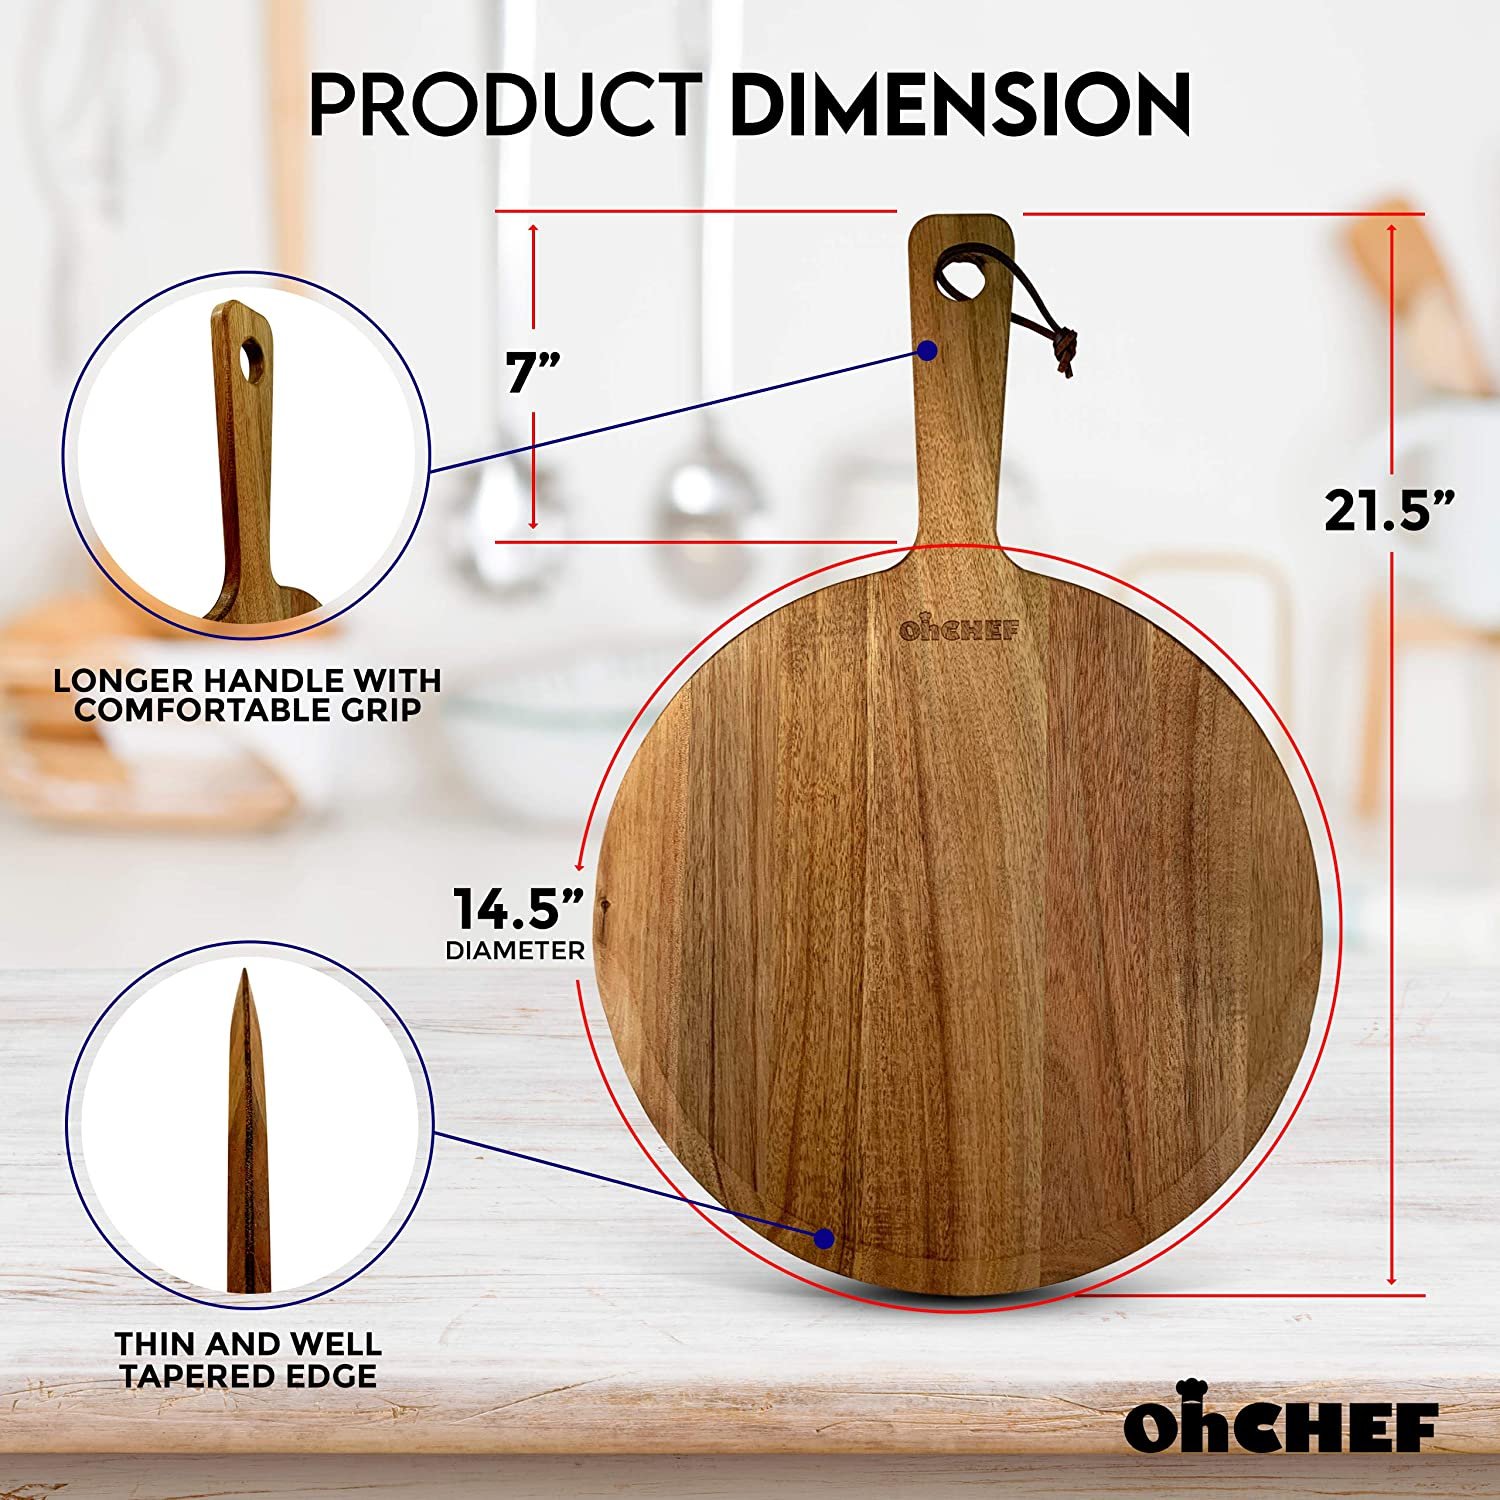 Wooden Pizza Paddle Wooden Pizza Peel Professional Wooden Board Spatula with Handle for Removing Pizza Multifunctional Kitchen Accessory Premium Acacia Wood Pizza Peel 21.5 x 14.5 Inch